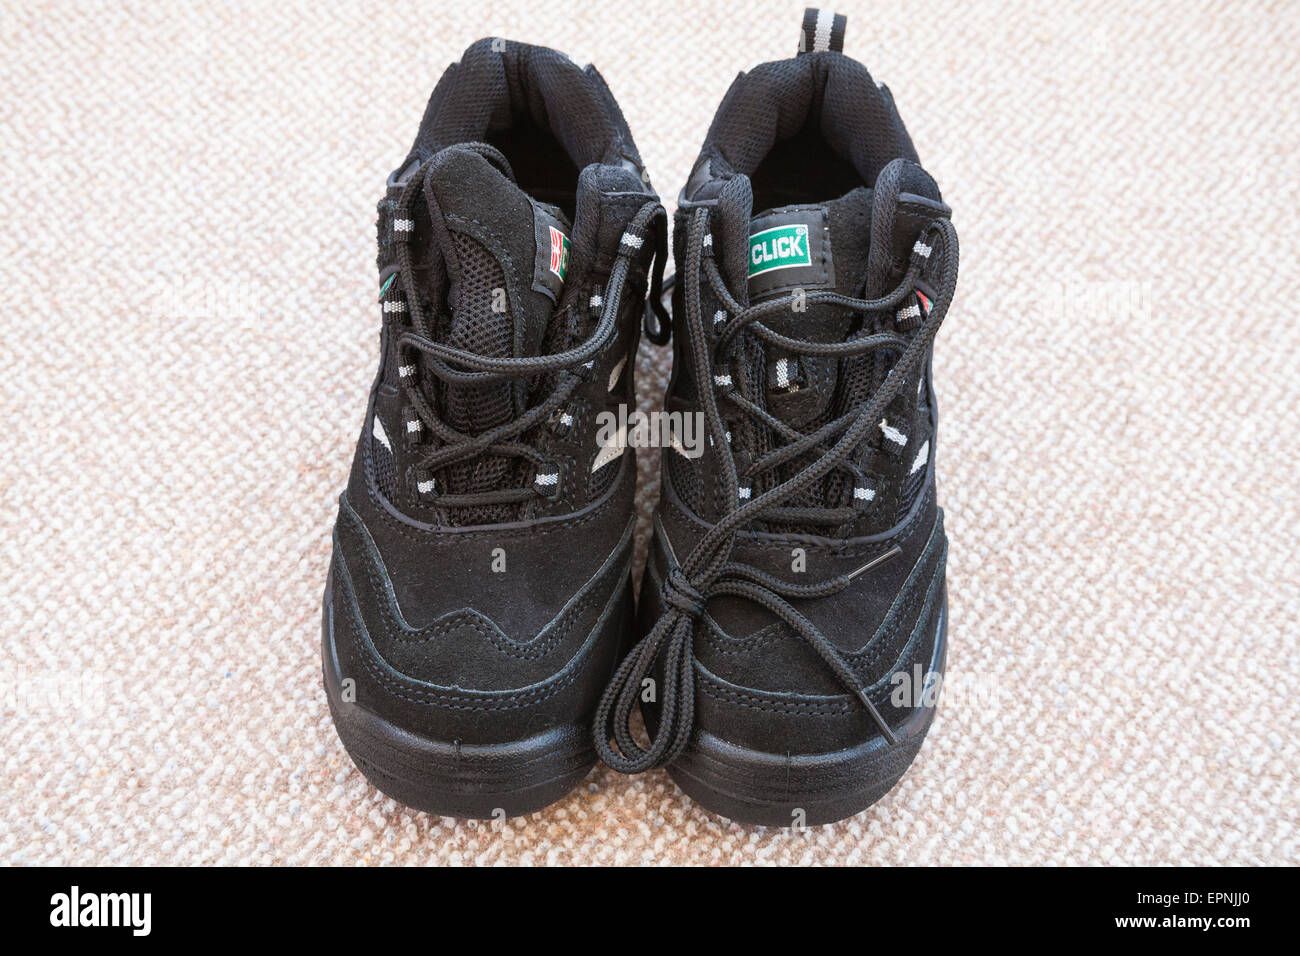 Pair new Click womens' black work safety trainers - Stock Image